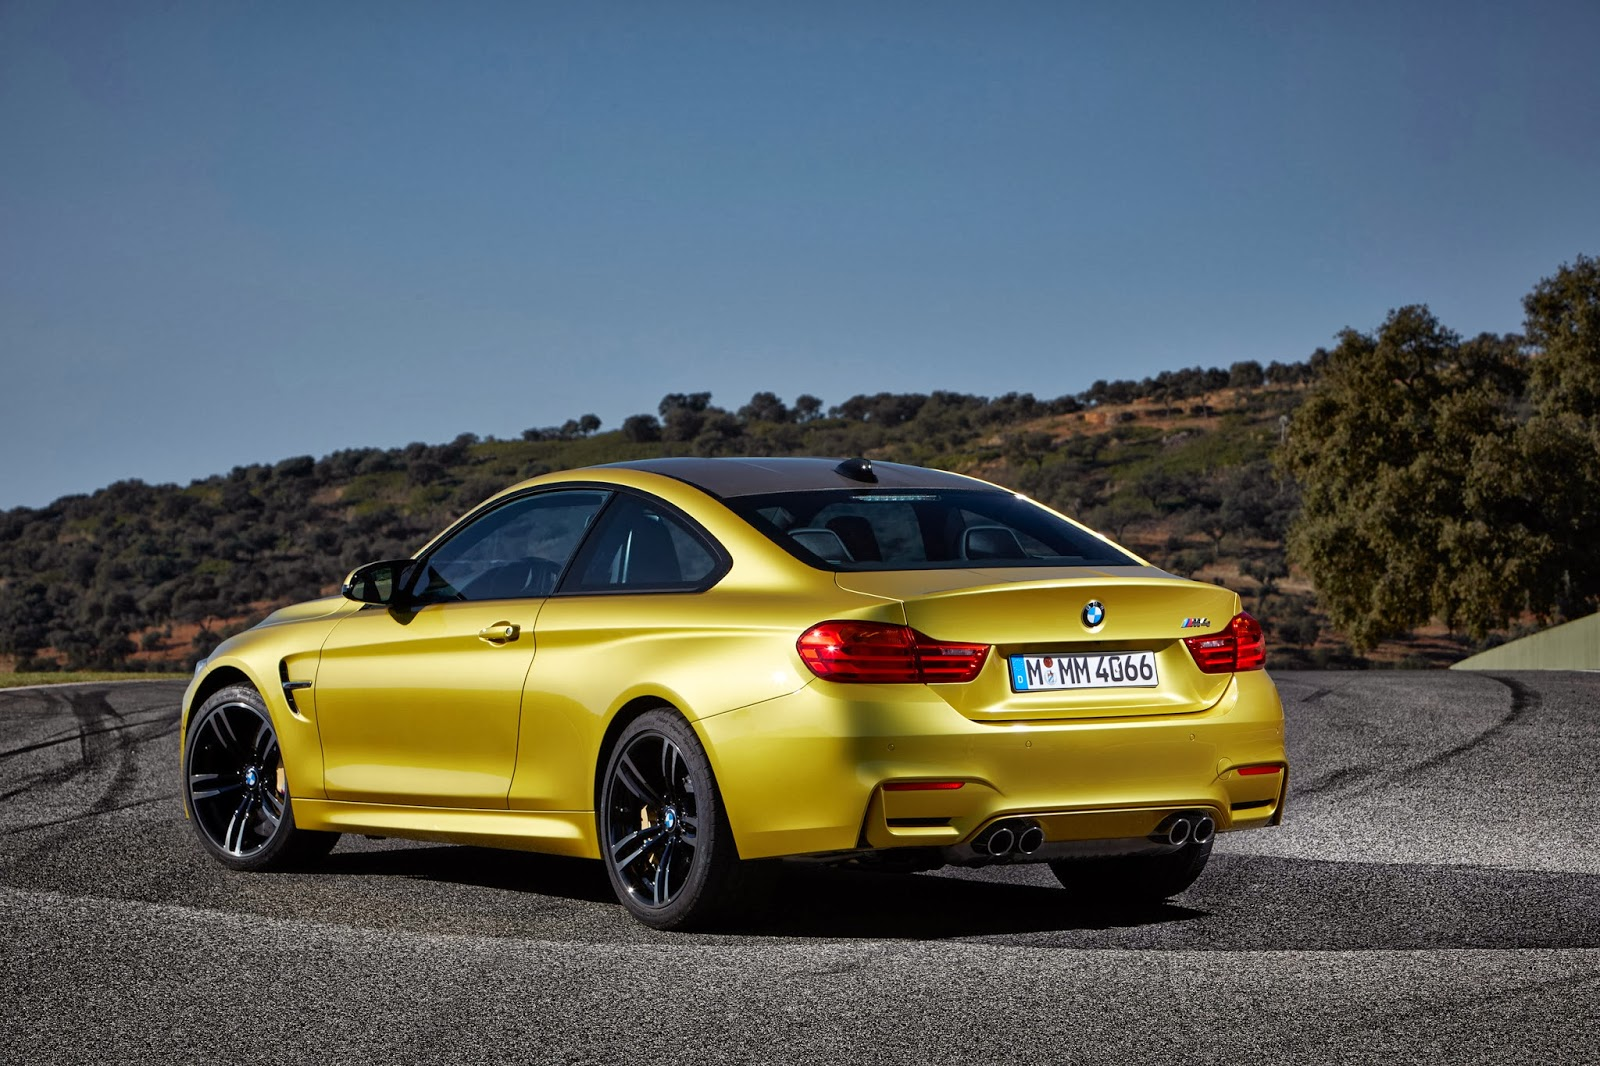 © Automotiveblogz: 2015 BMW M4 Coupe Photos